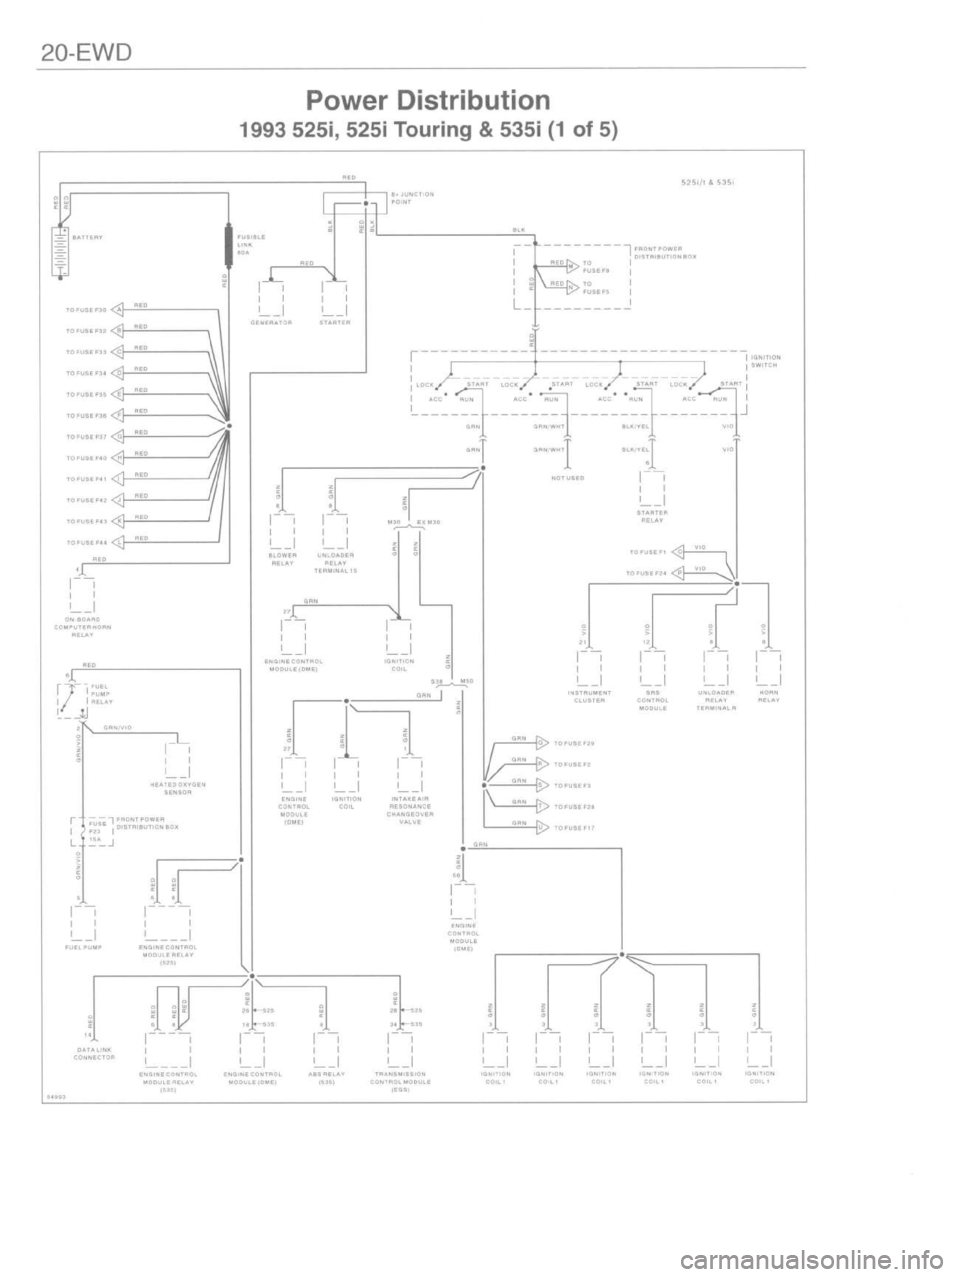 BMW 328i 1996 E36 Workshop Manual (459 Pages), Page 450: